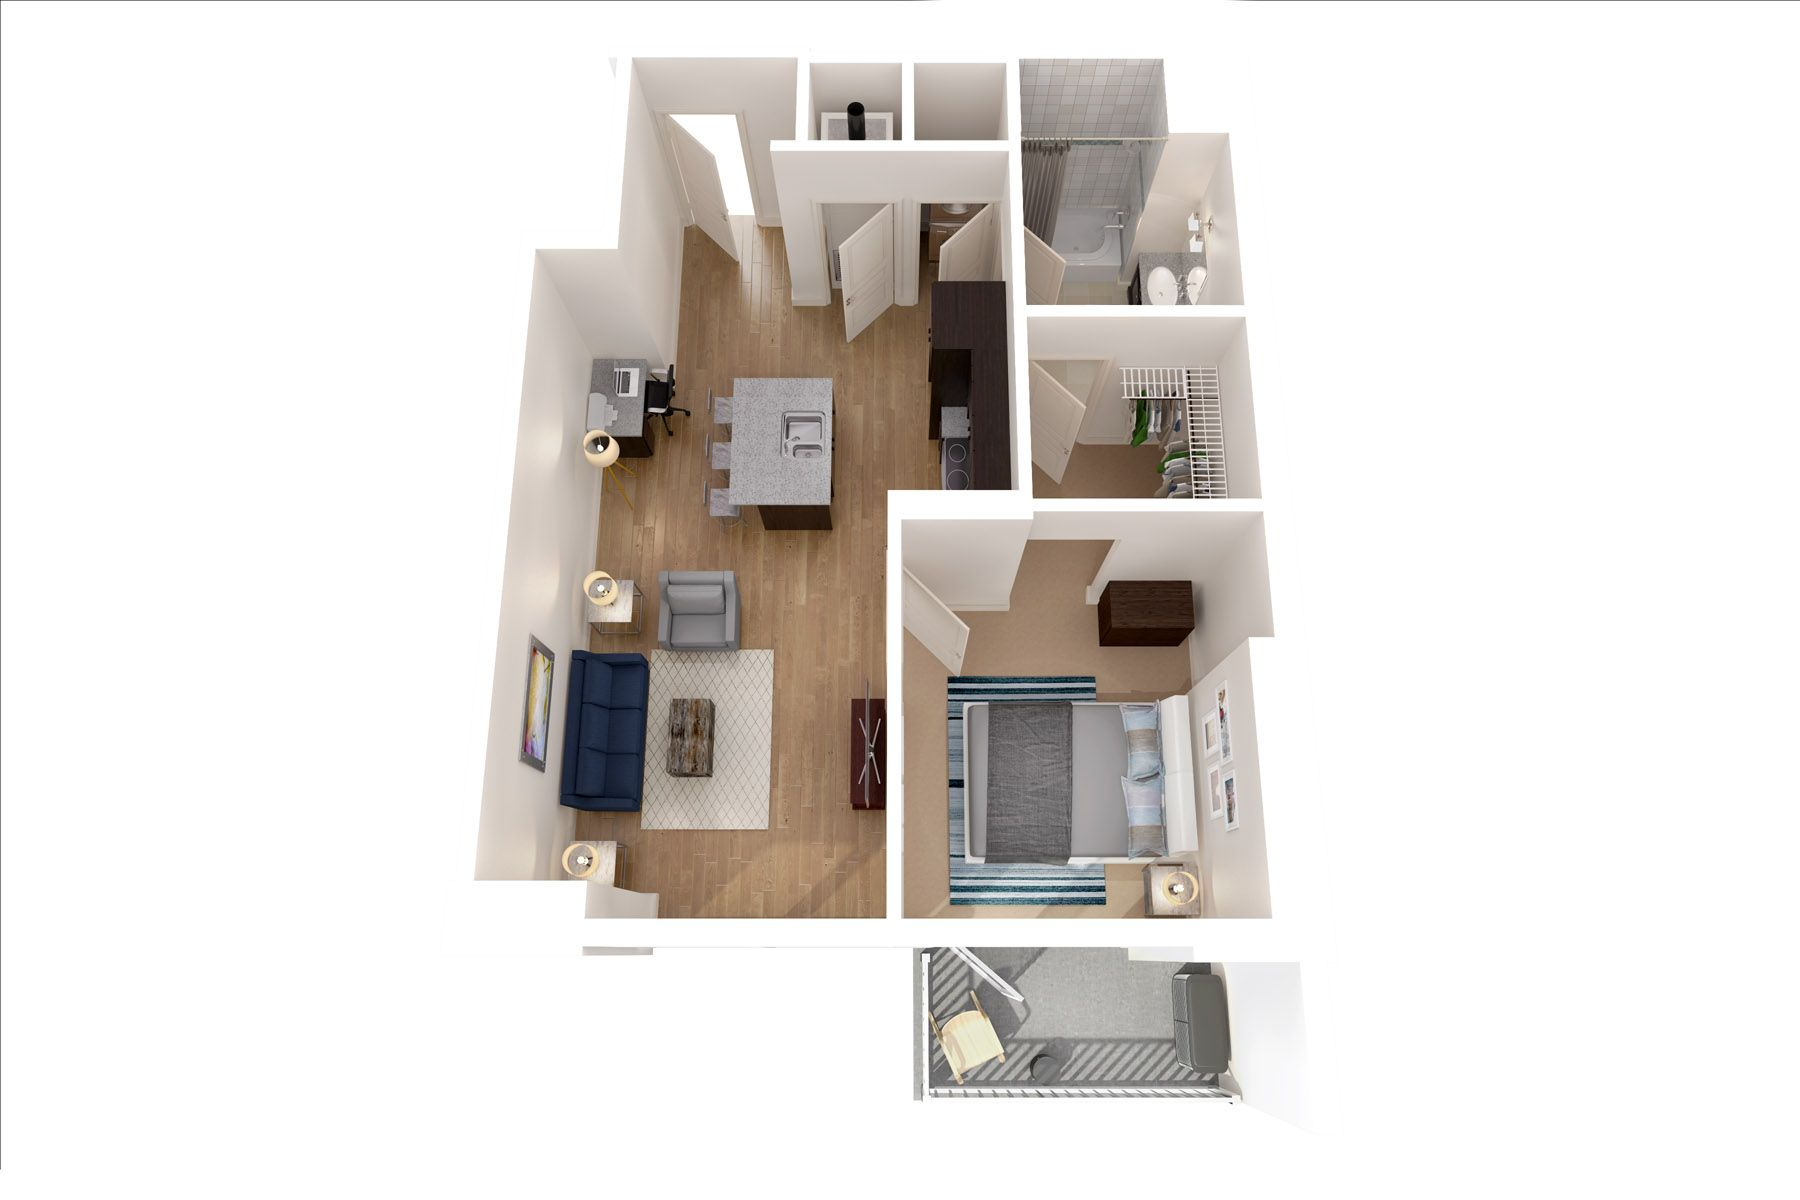 The Pahoy 691 Sq Ft Bedroom Apartment Apartment Range 1 Bedroom Apartment